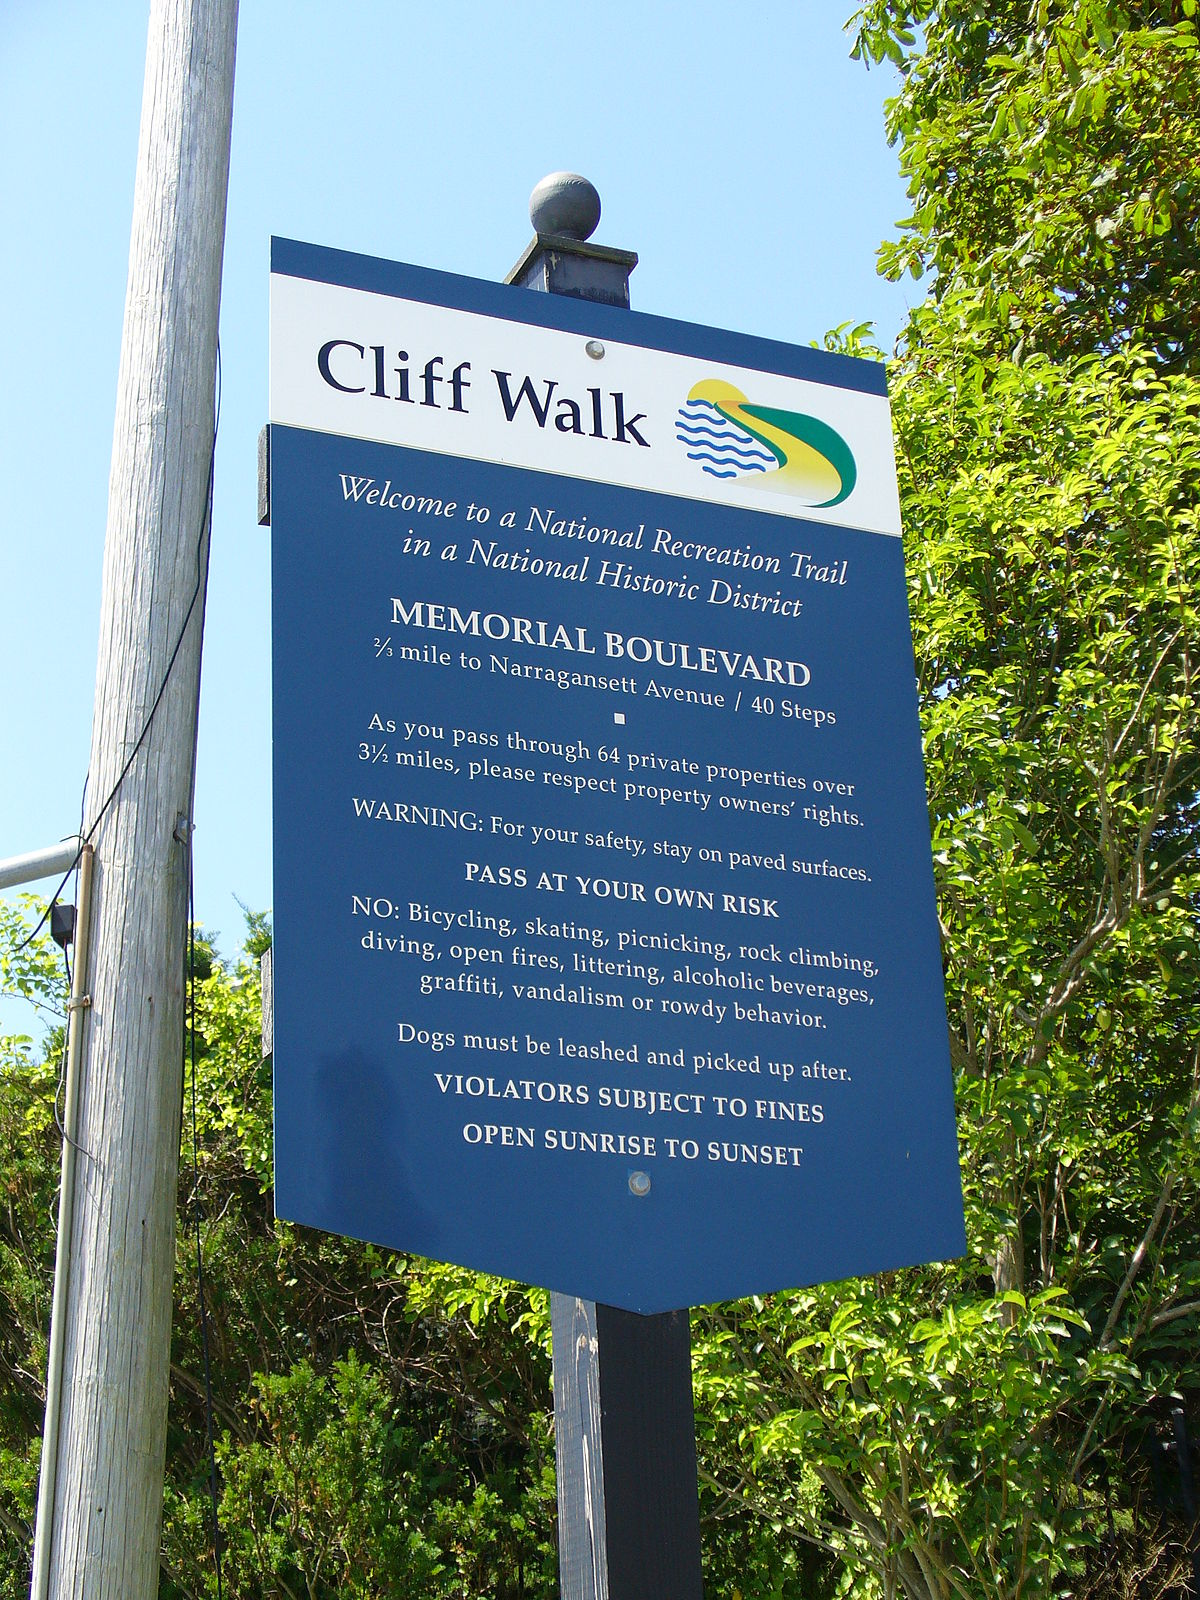 Newport Cliff Walk - Wikipedia